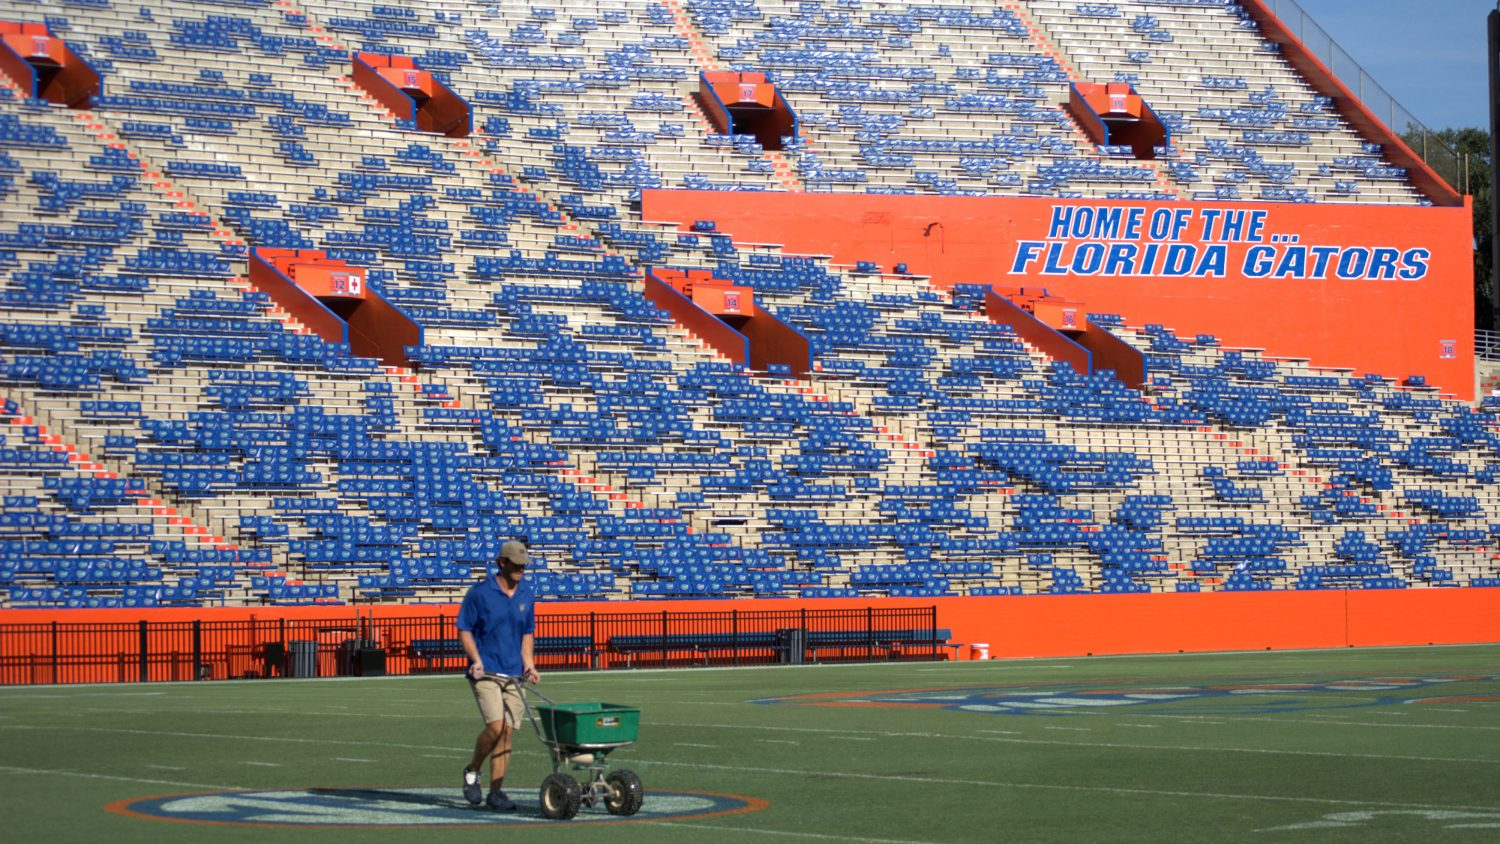 On Monday, Sept. 1, 24-year-old turf groundskeeper John Wagnon fertilizes the Ben Hill Griffin Stadium after UF's opening game against Idaho was canceled on Saturday. The game was called after severe weather caused significant delays and left the field unsafe.